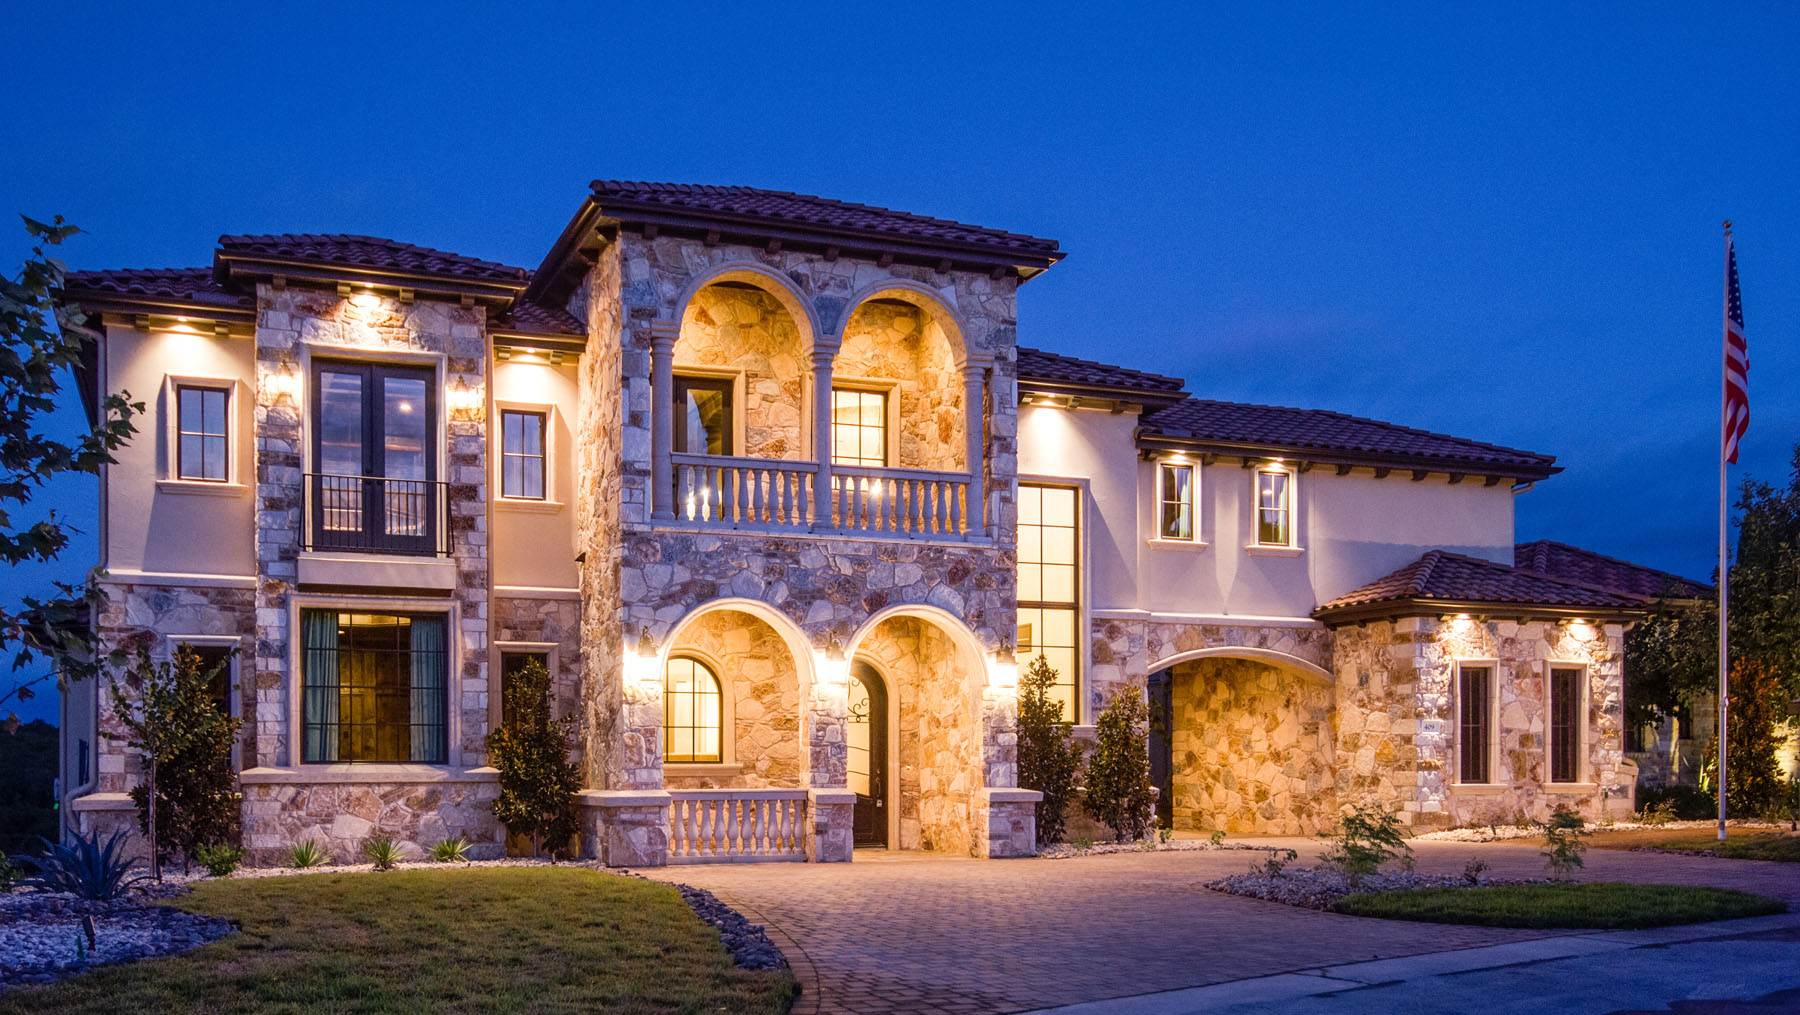 Single Family Home for Sale at Stunning Lake Travis and Hill Country Views 409 Rough Hollow Cv Austin, Texas 78734 United States